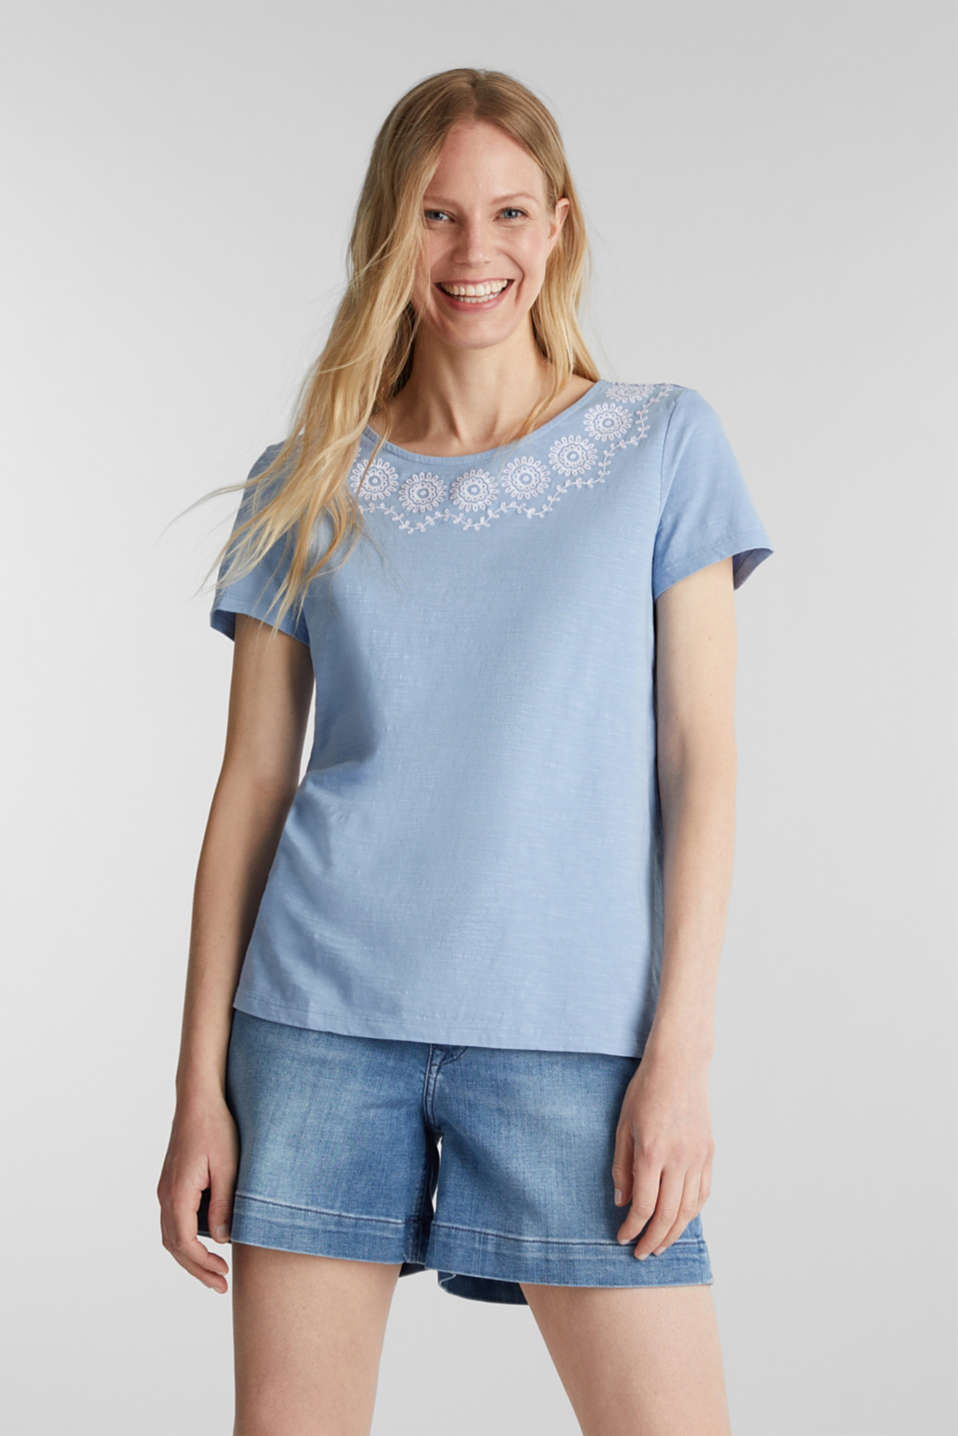 Esprit - Cotton top with embroidery